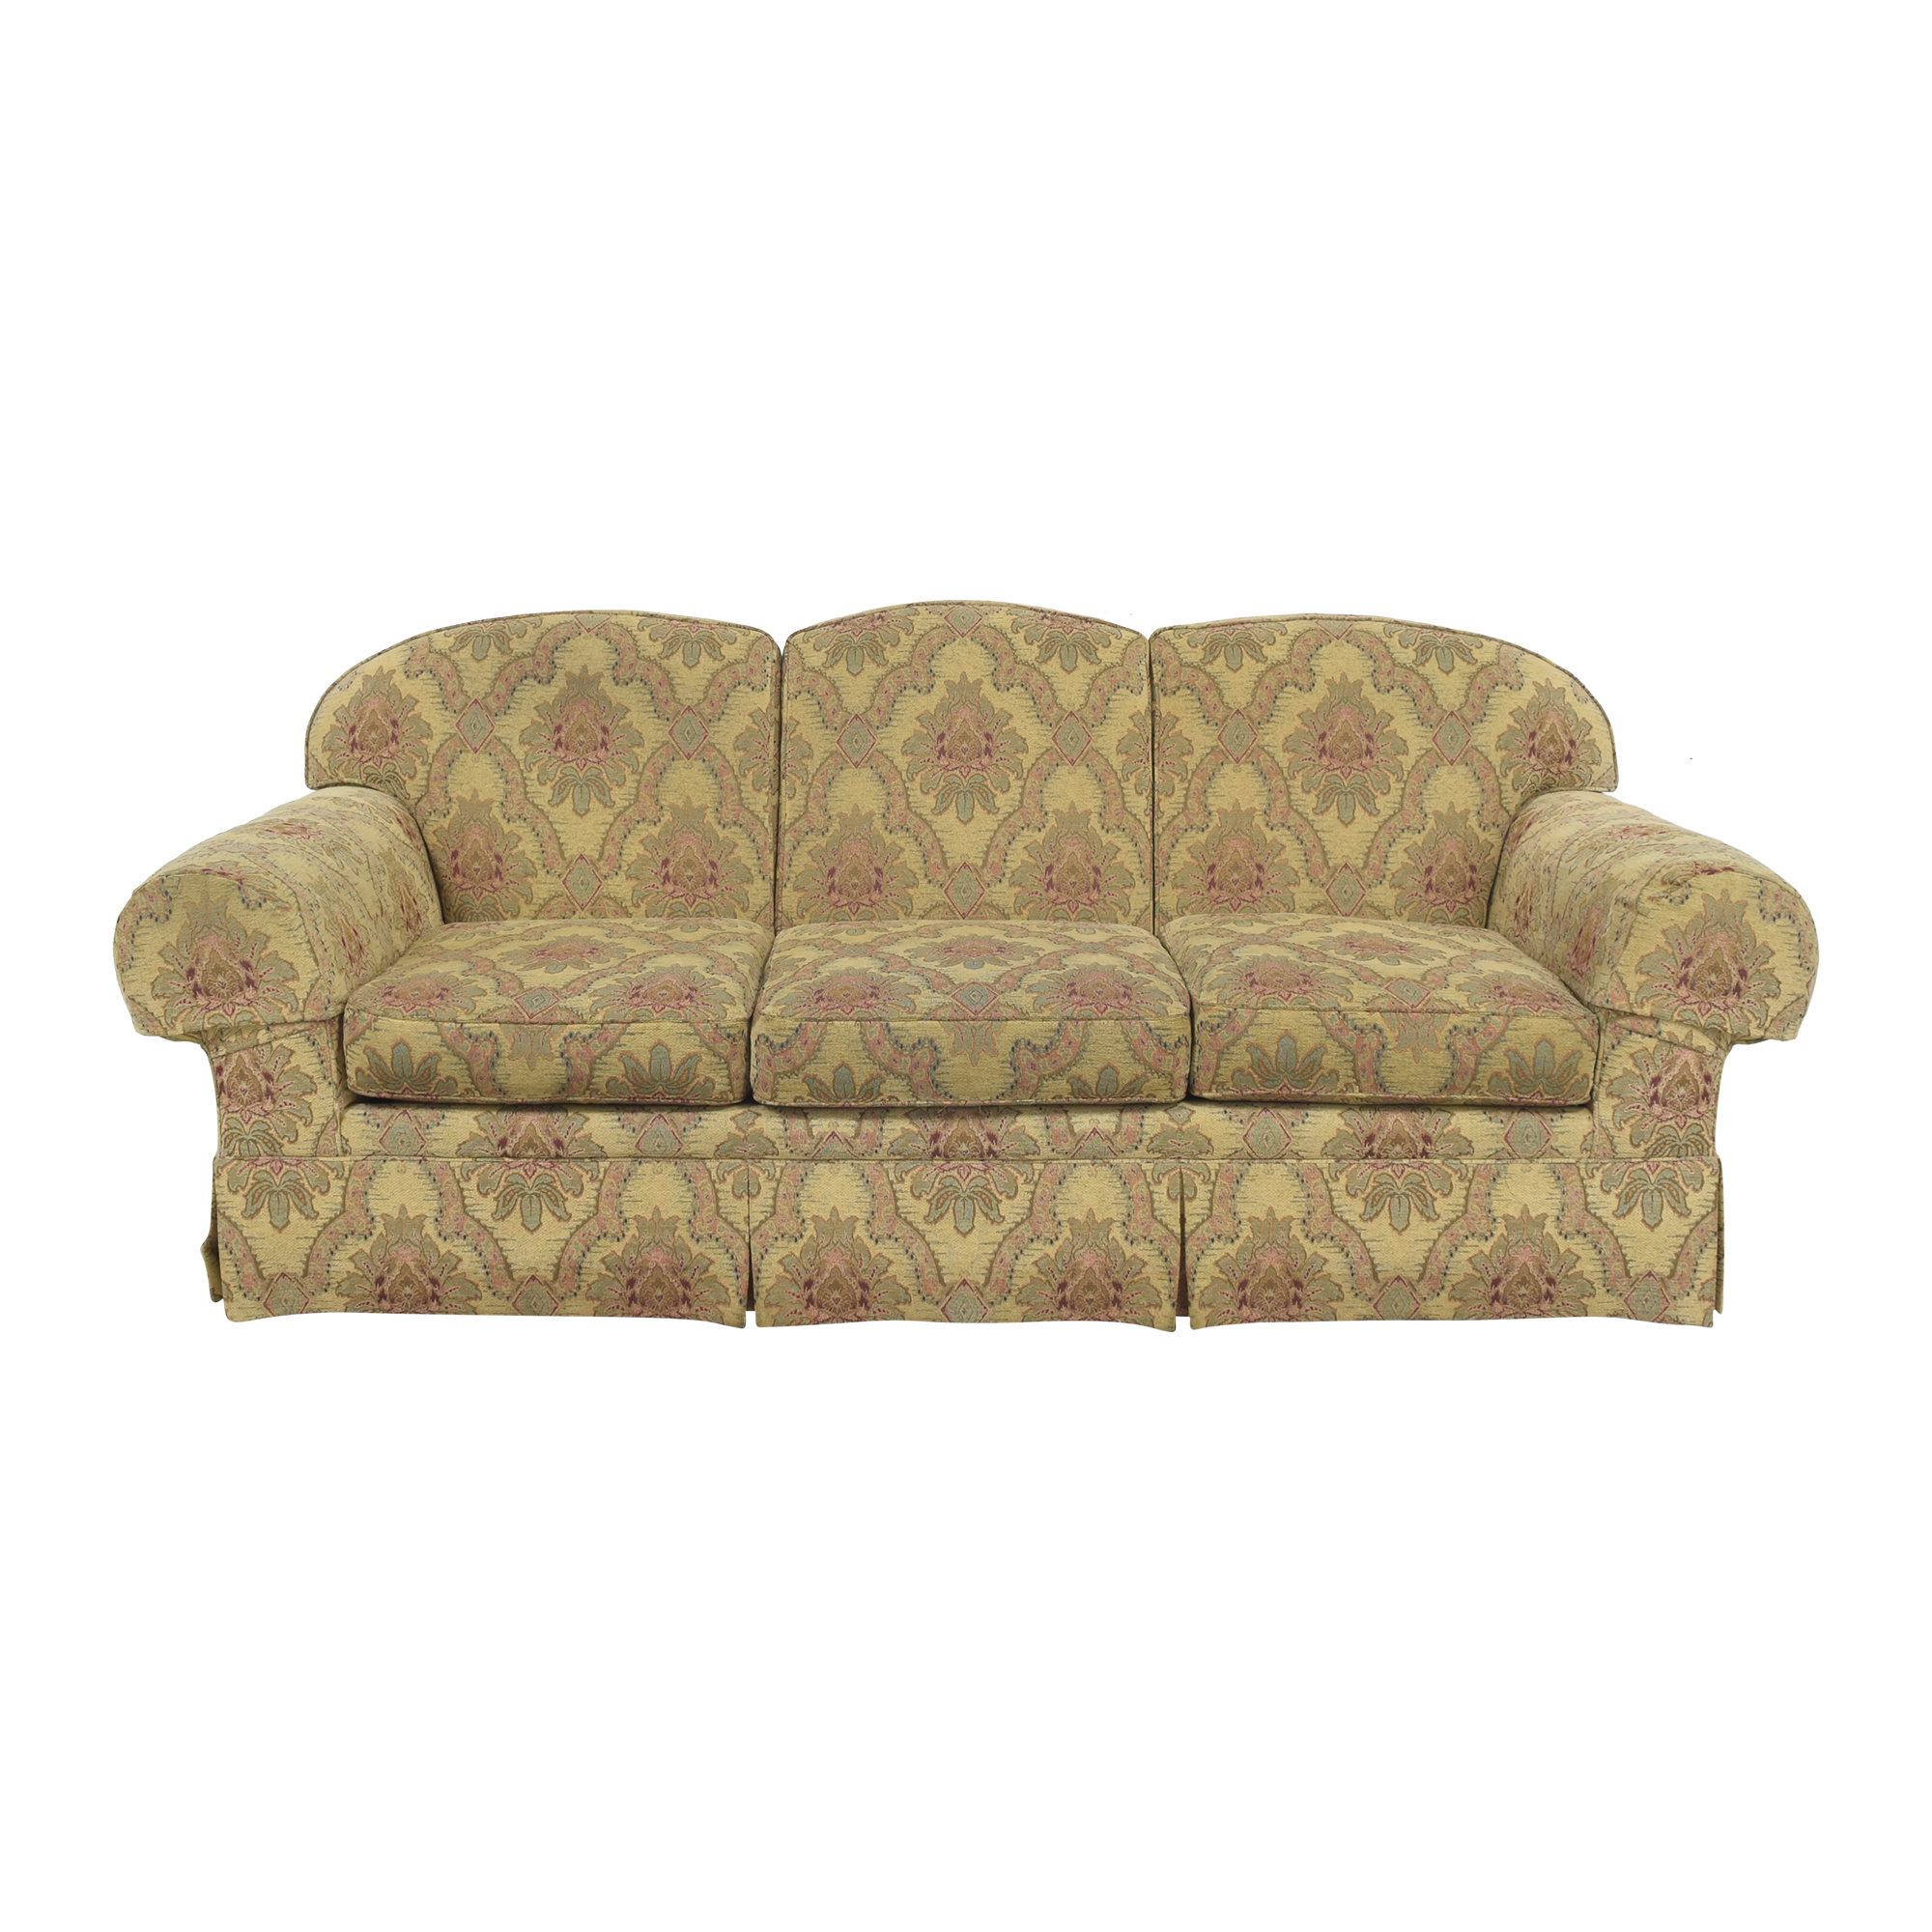 Sherrill Furniture Sherrill Furniture Three Cushion Tapestry Sofa coupon